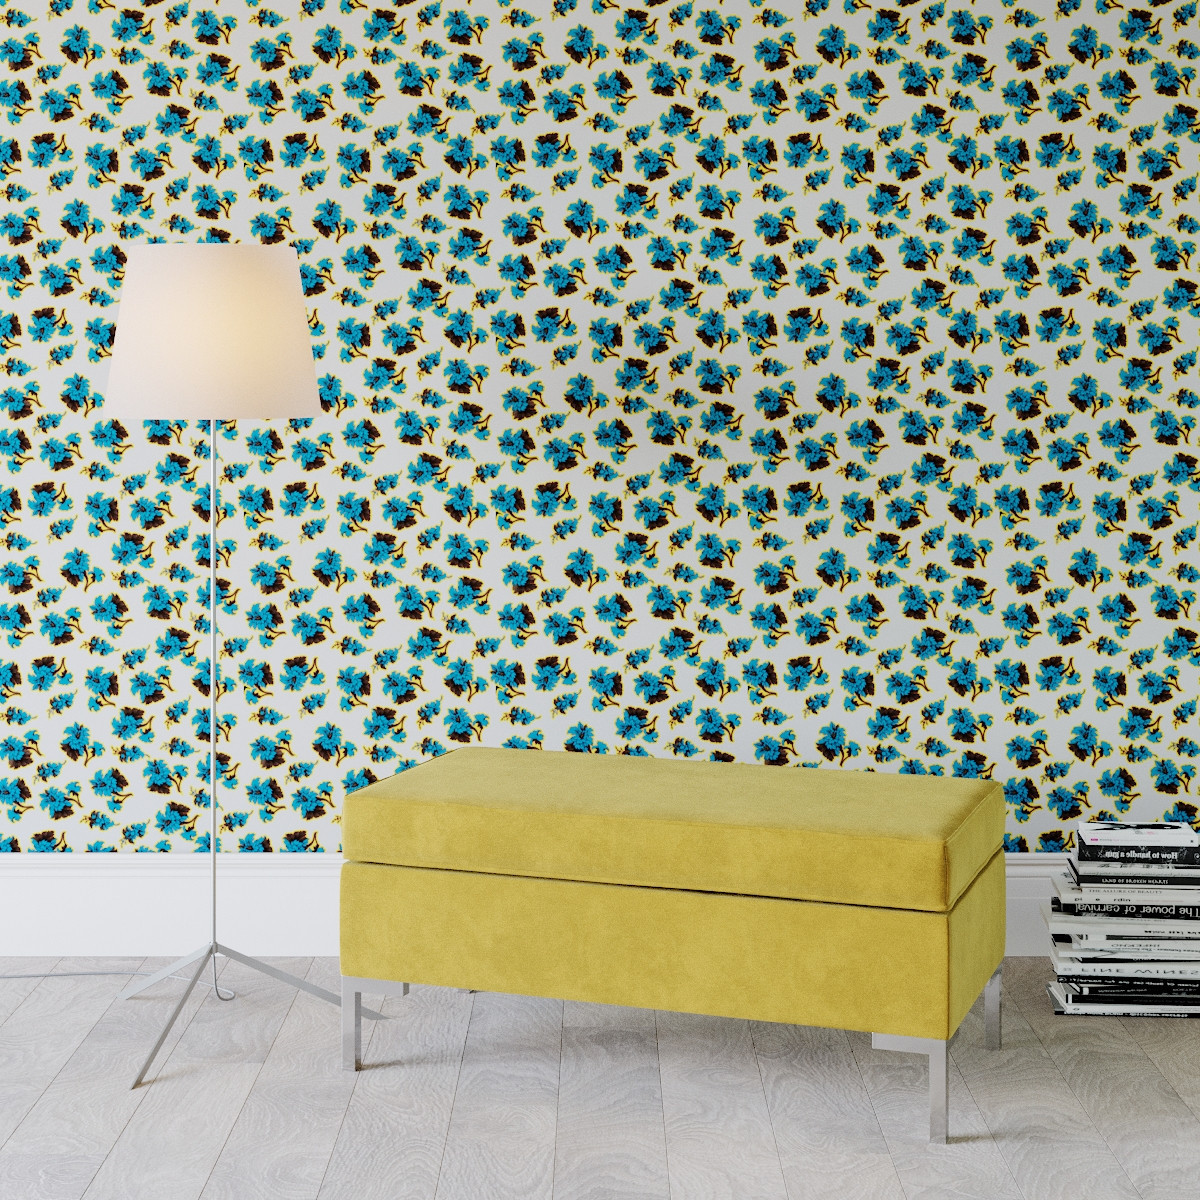 Acid Floral Peel And Stick Wallpaper Roll The Inside